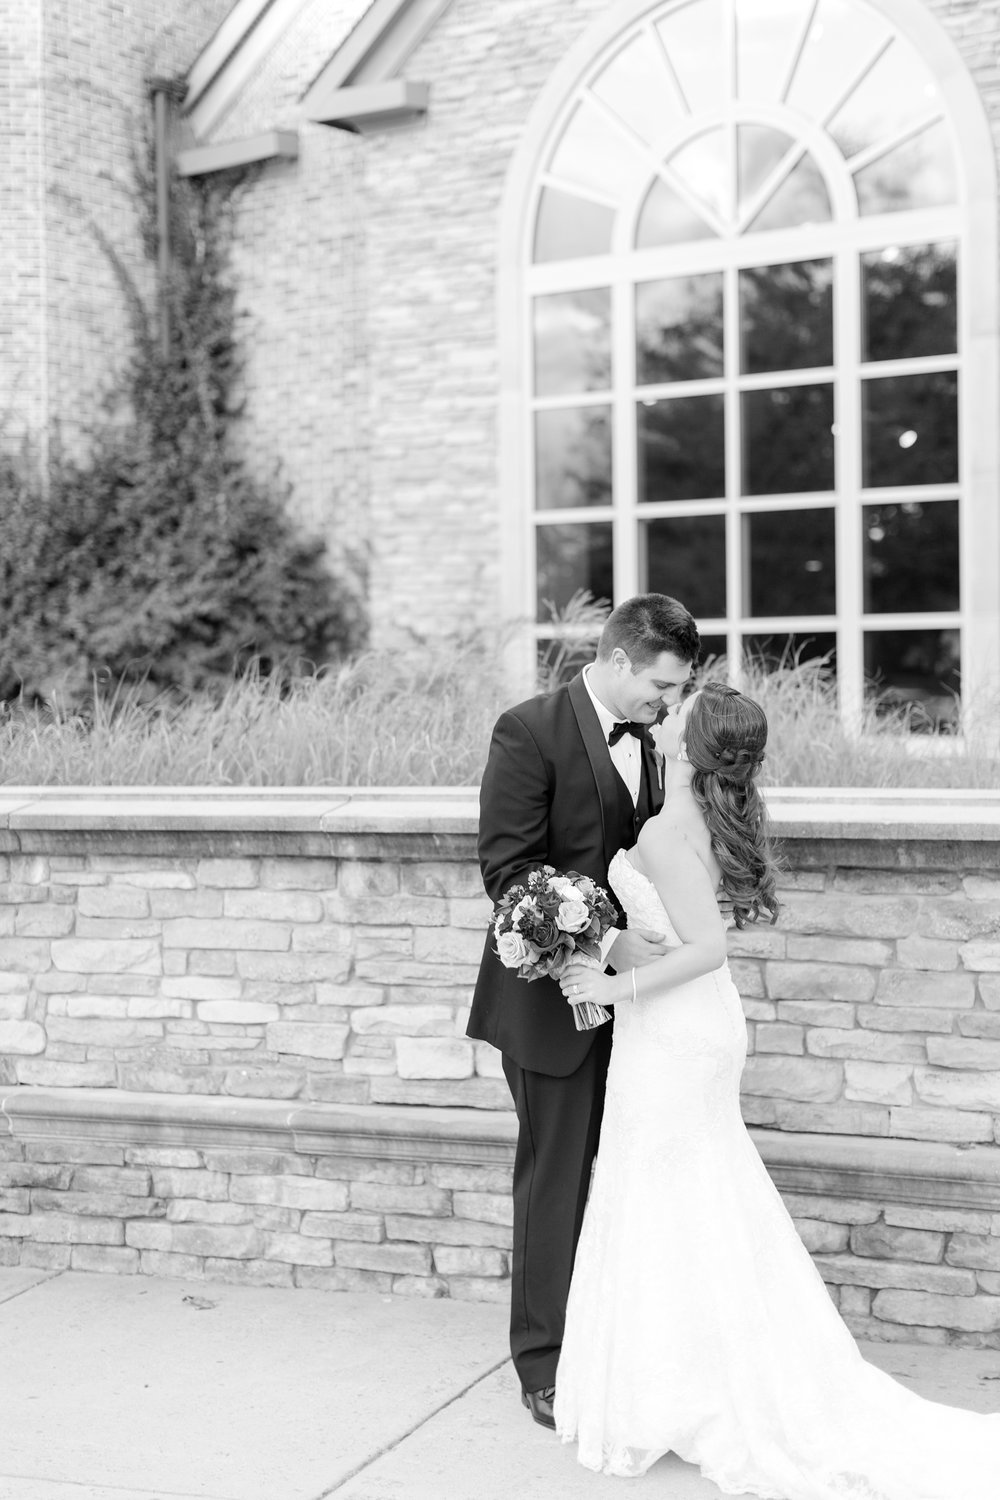 MacDonald 5. Bride & Groom Portraits-1042_anna grace photography leesburg virginia wedding photographer lansdowne resort wedding photo.jpg